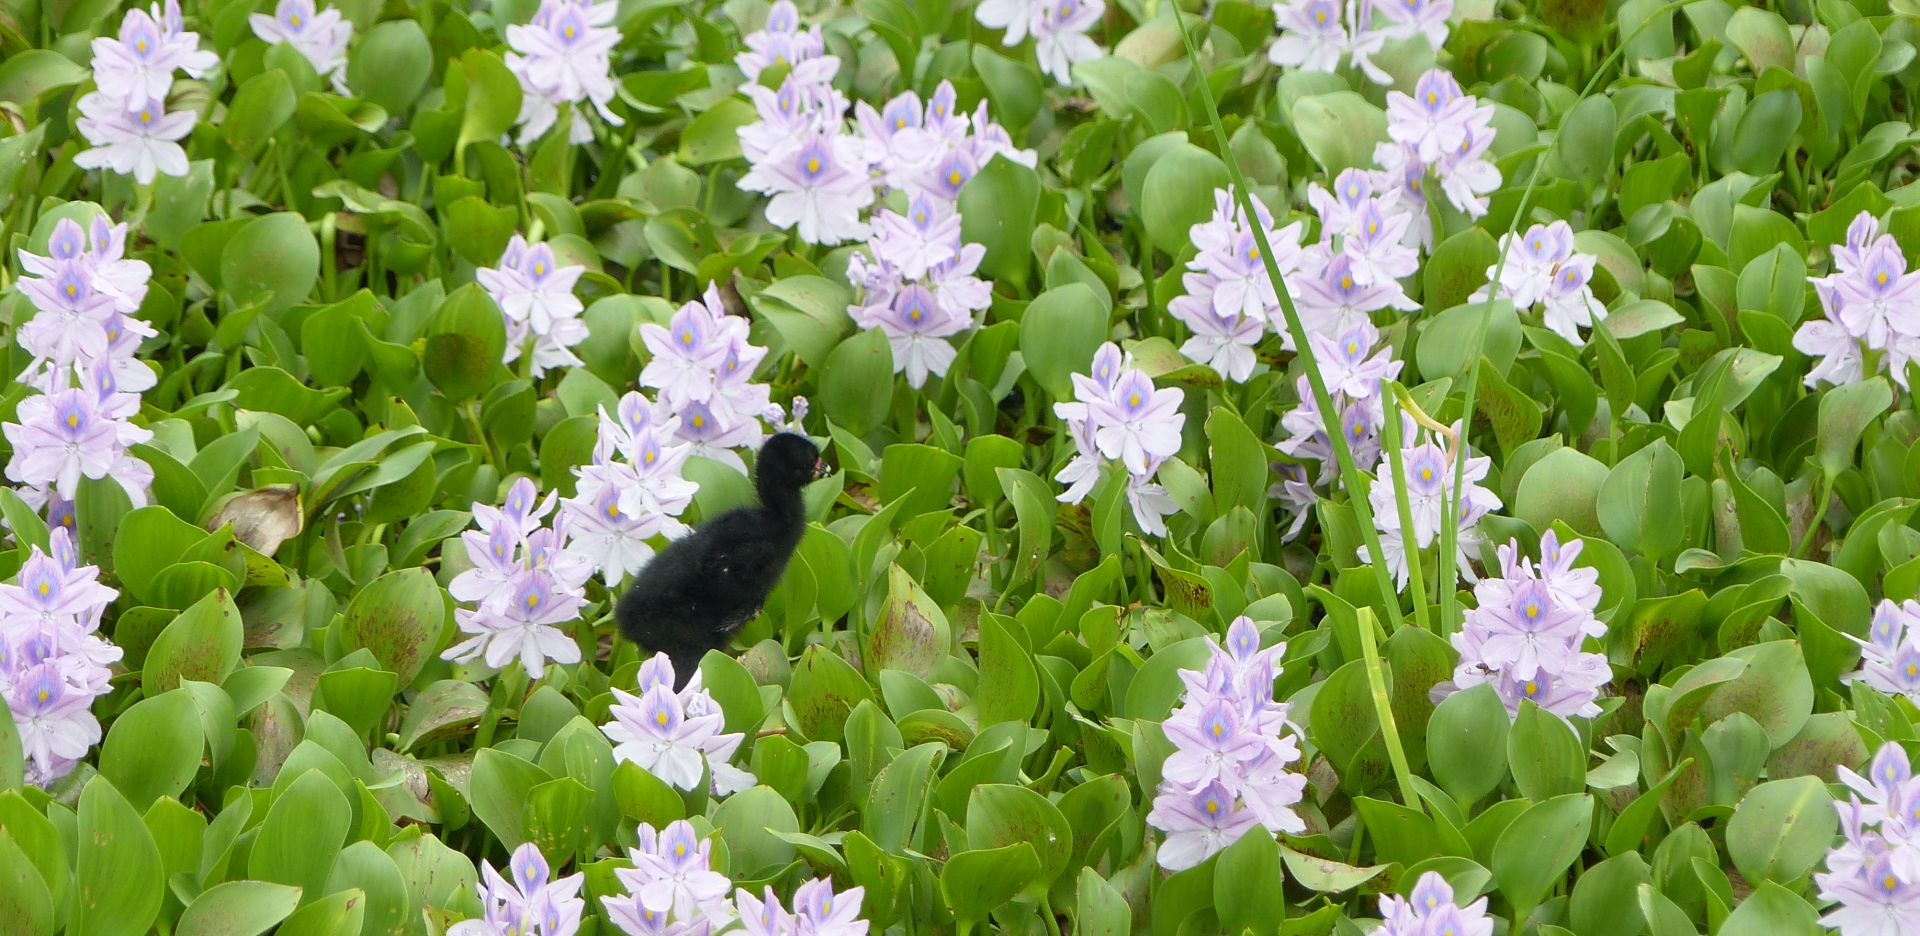 P3020265 june 9 baby gallinule in a playground of flowers